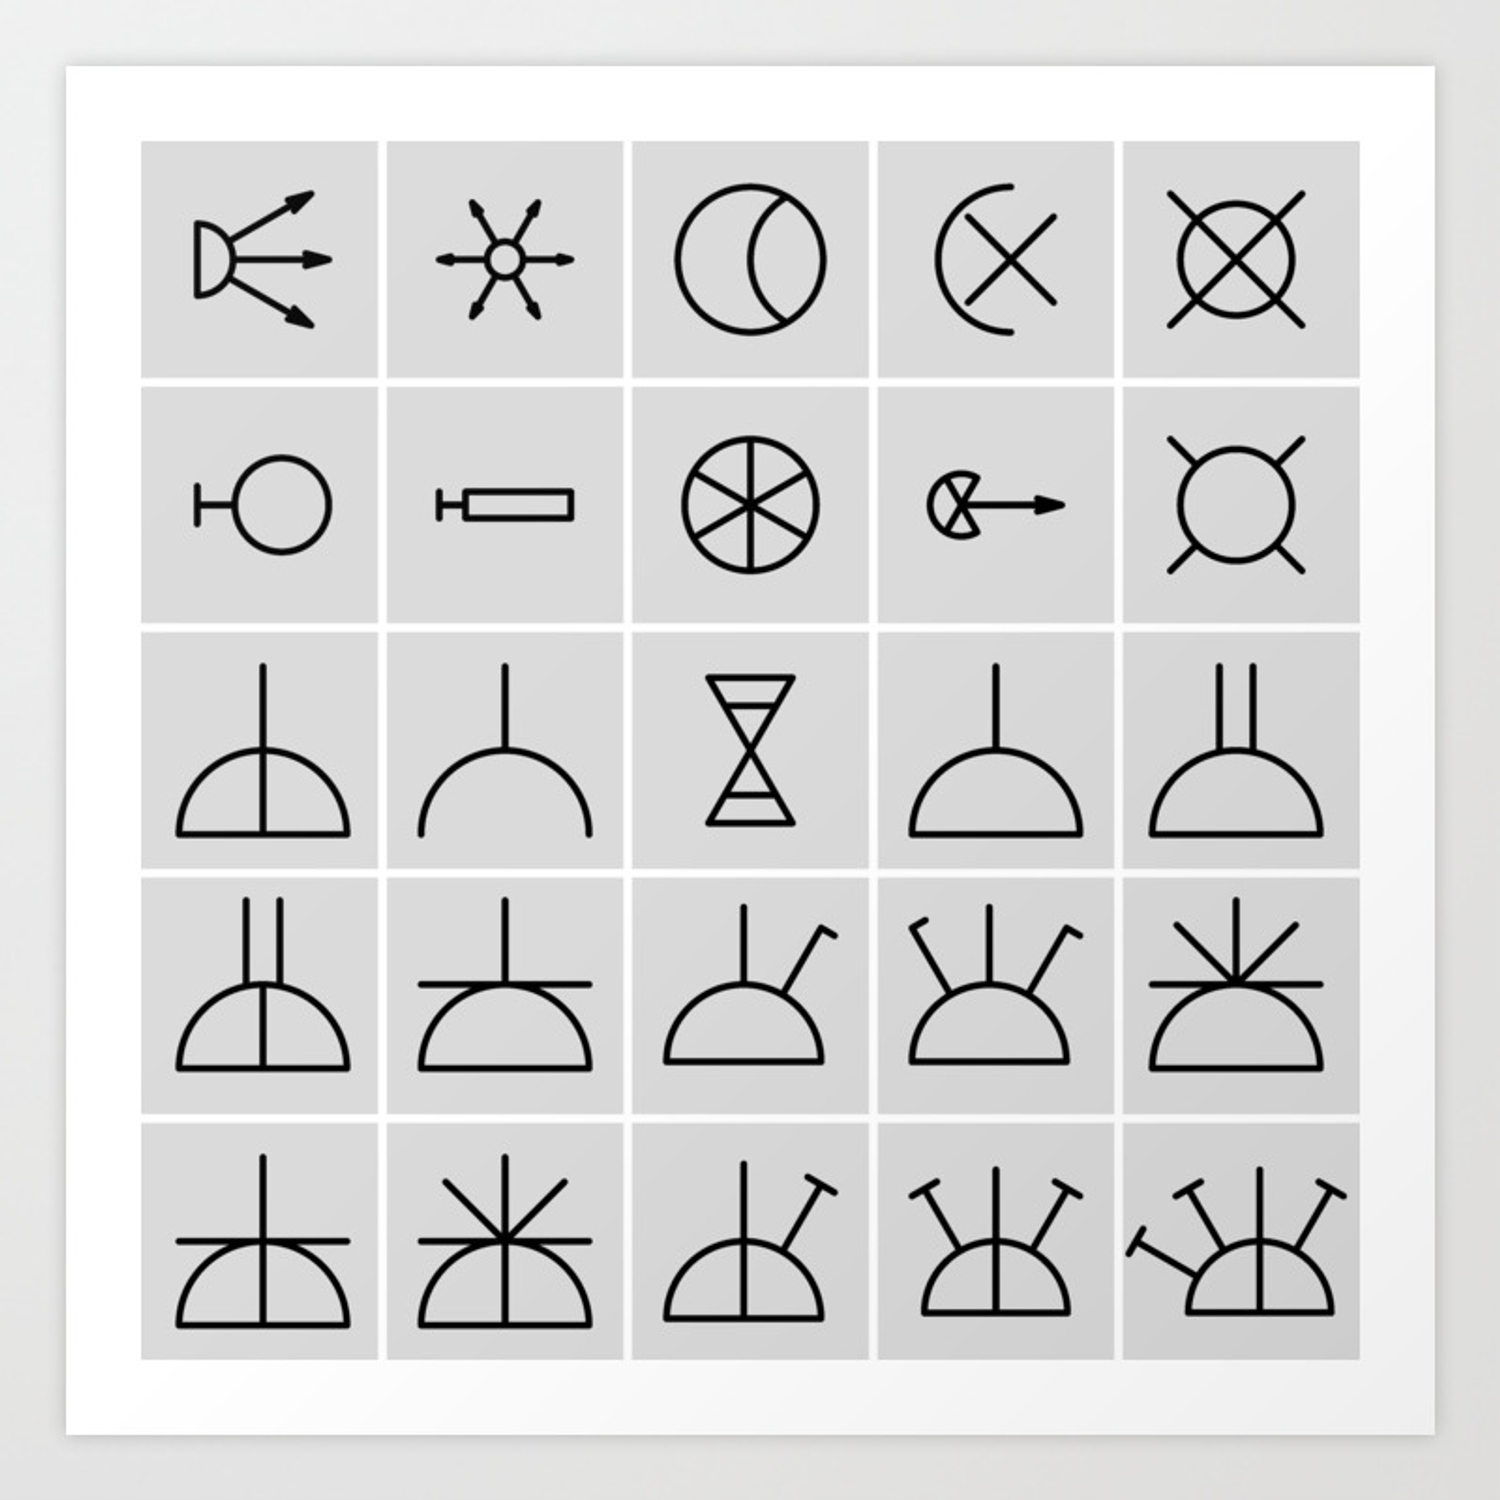 icons electrical symbols Art Print on wiring diagram symbols, happy human, printed circuit board, electrical wiring blueprint, aerospace print symbols, laundry symbol, residential print symbols, industrial motor control symbols, manufacturing print symbols, ohm's law, mechanical print symbols, sheet metal print symbols, electrical amp symbol, hydraulic print symbols, piping print symbols, electrical disconnect symbol, print reading symbols, period-after-opening symbol, circuit diagram symbols, power symbol, blue print symbols, floor plan symbols, electrical network, welding print symbols, commonly used symbols, electronic circuit, hazard symbol, no symbol, communication print symbols, electronic color code, electrical blue print,